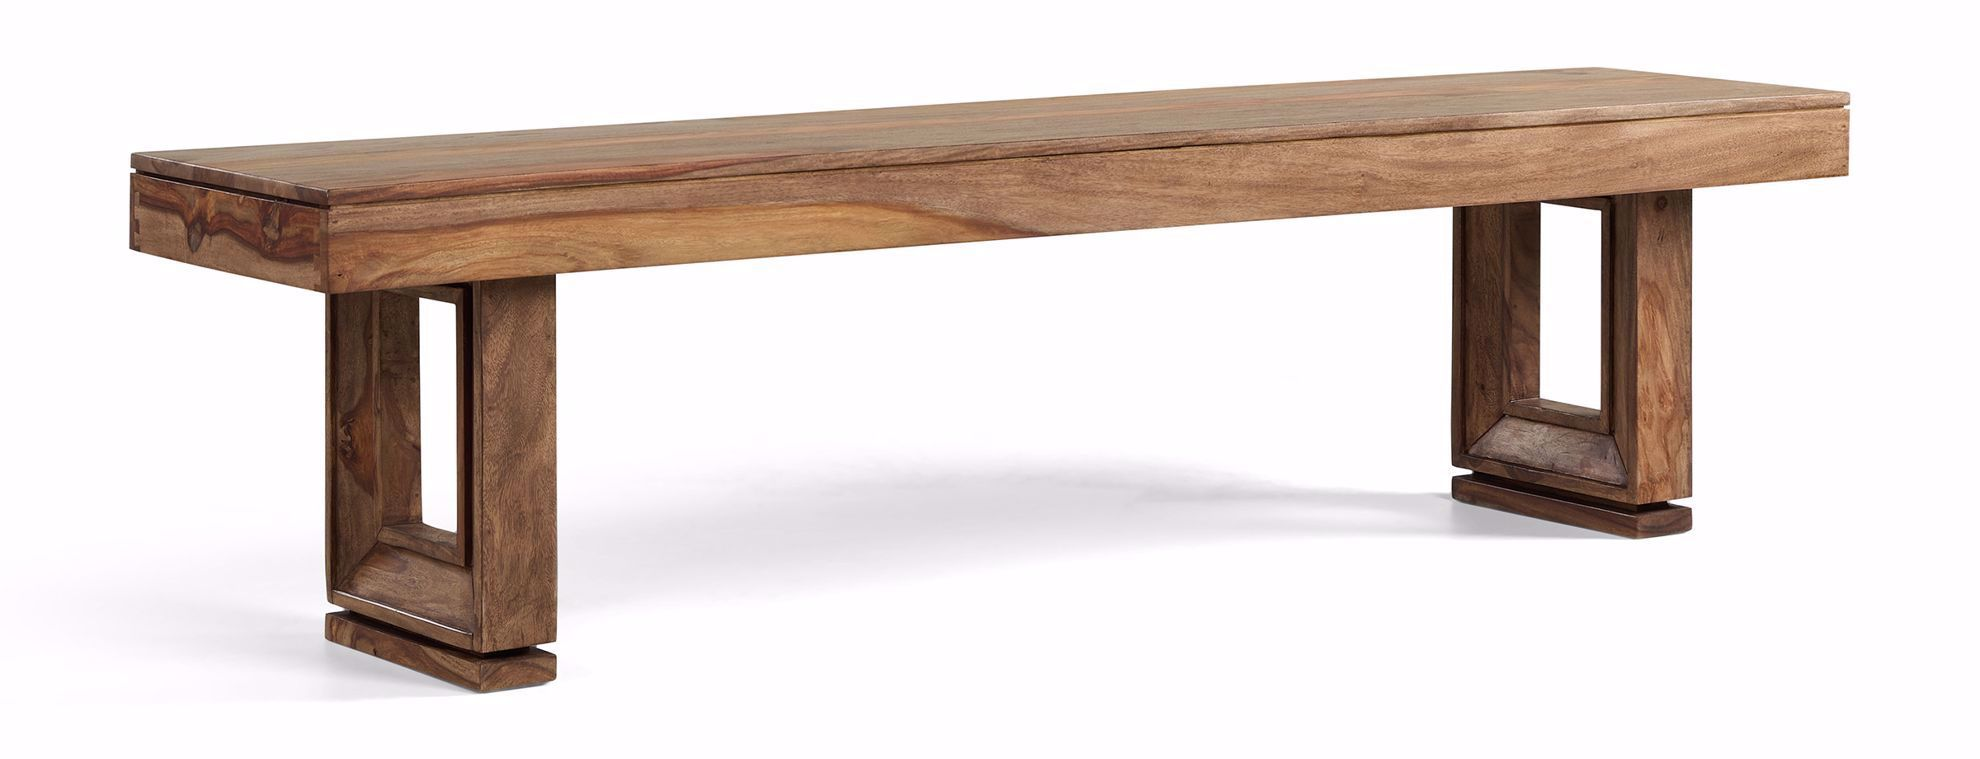 Picture of Brownstone Backless Dining Bench